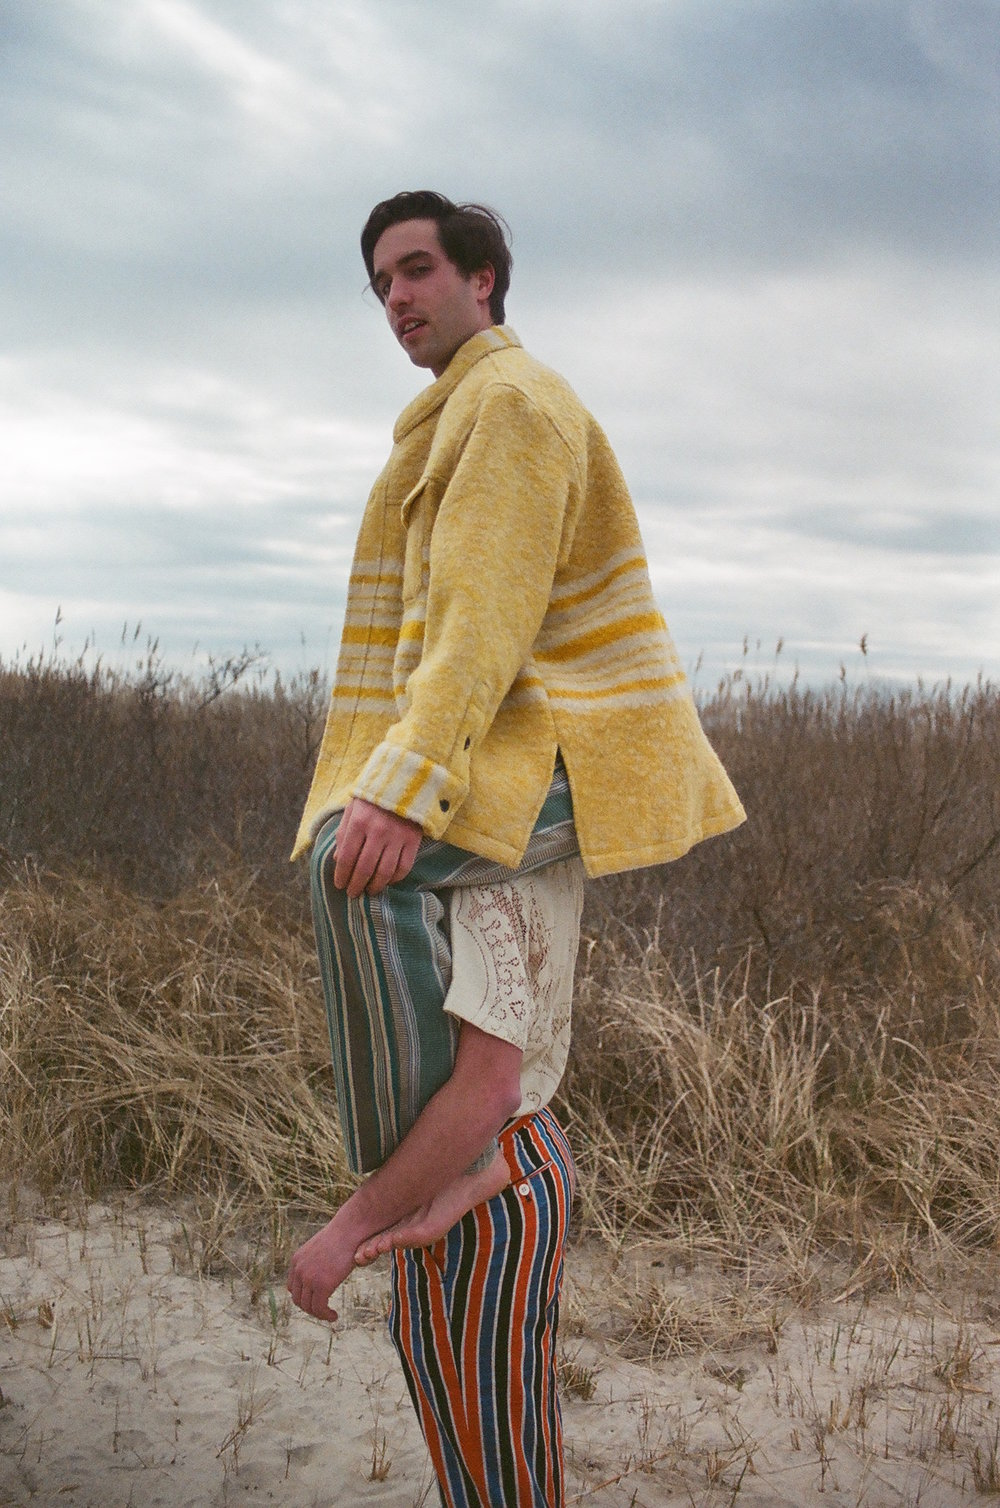 Chelsy-Mitchel-photographer-bode-nyc-fashion-beach-editorial-beachside-car-christian-matthew-rice-ocean-summer-styling.JPG